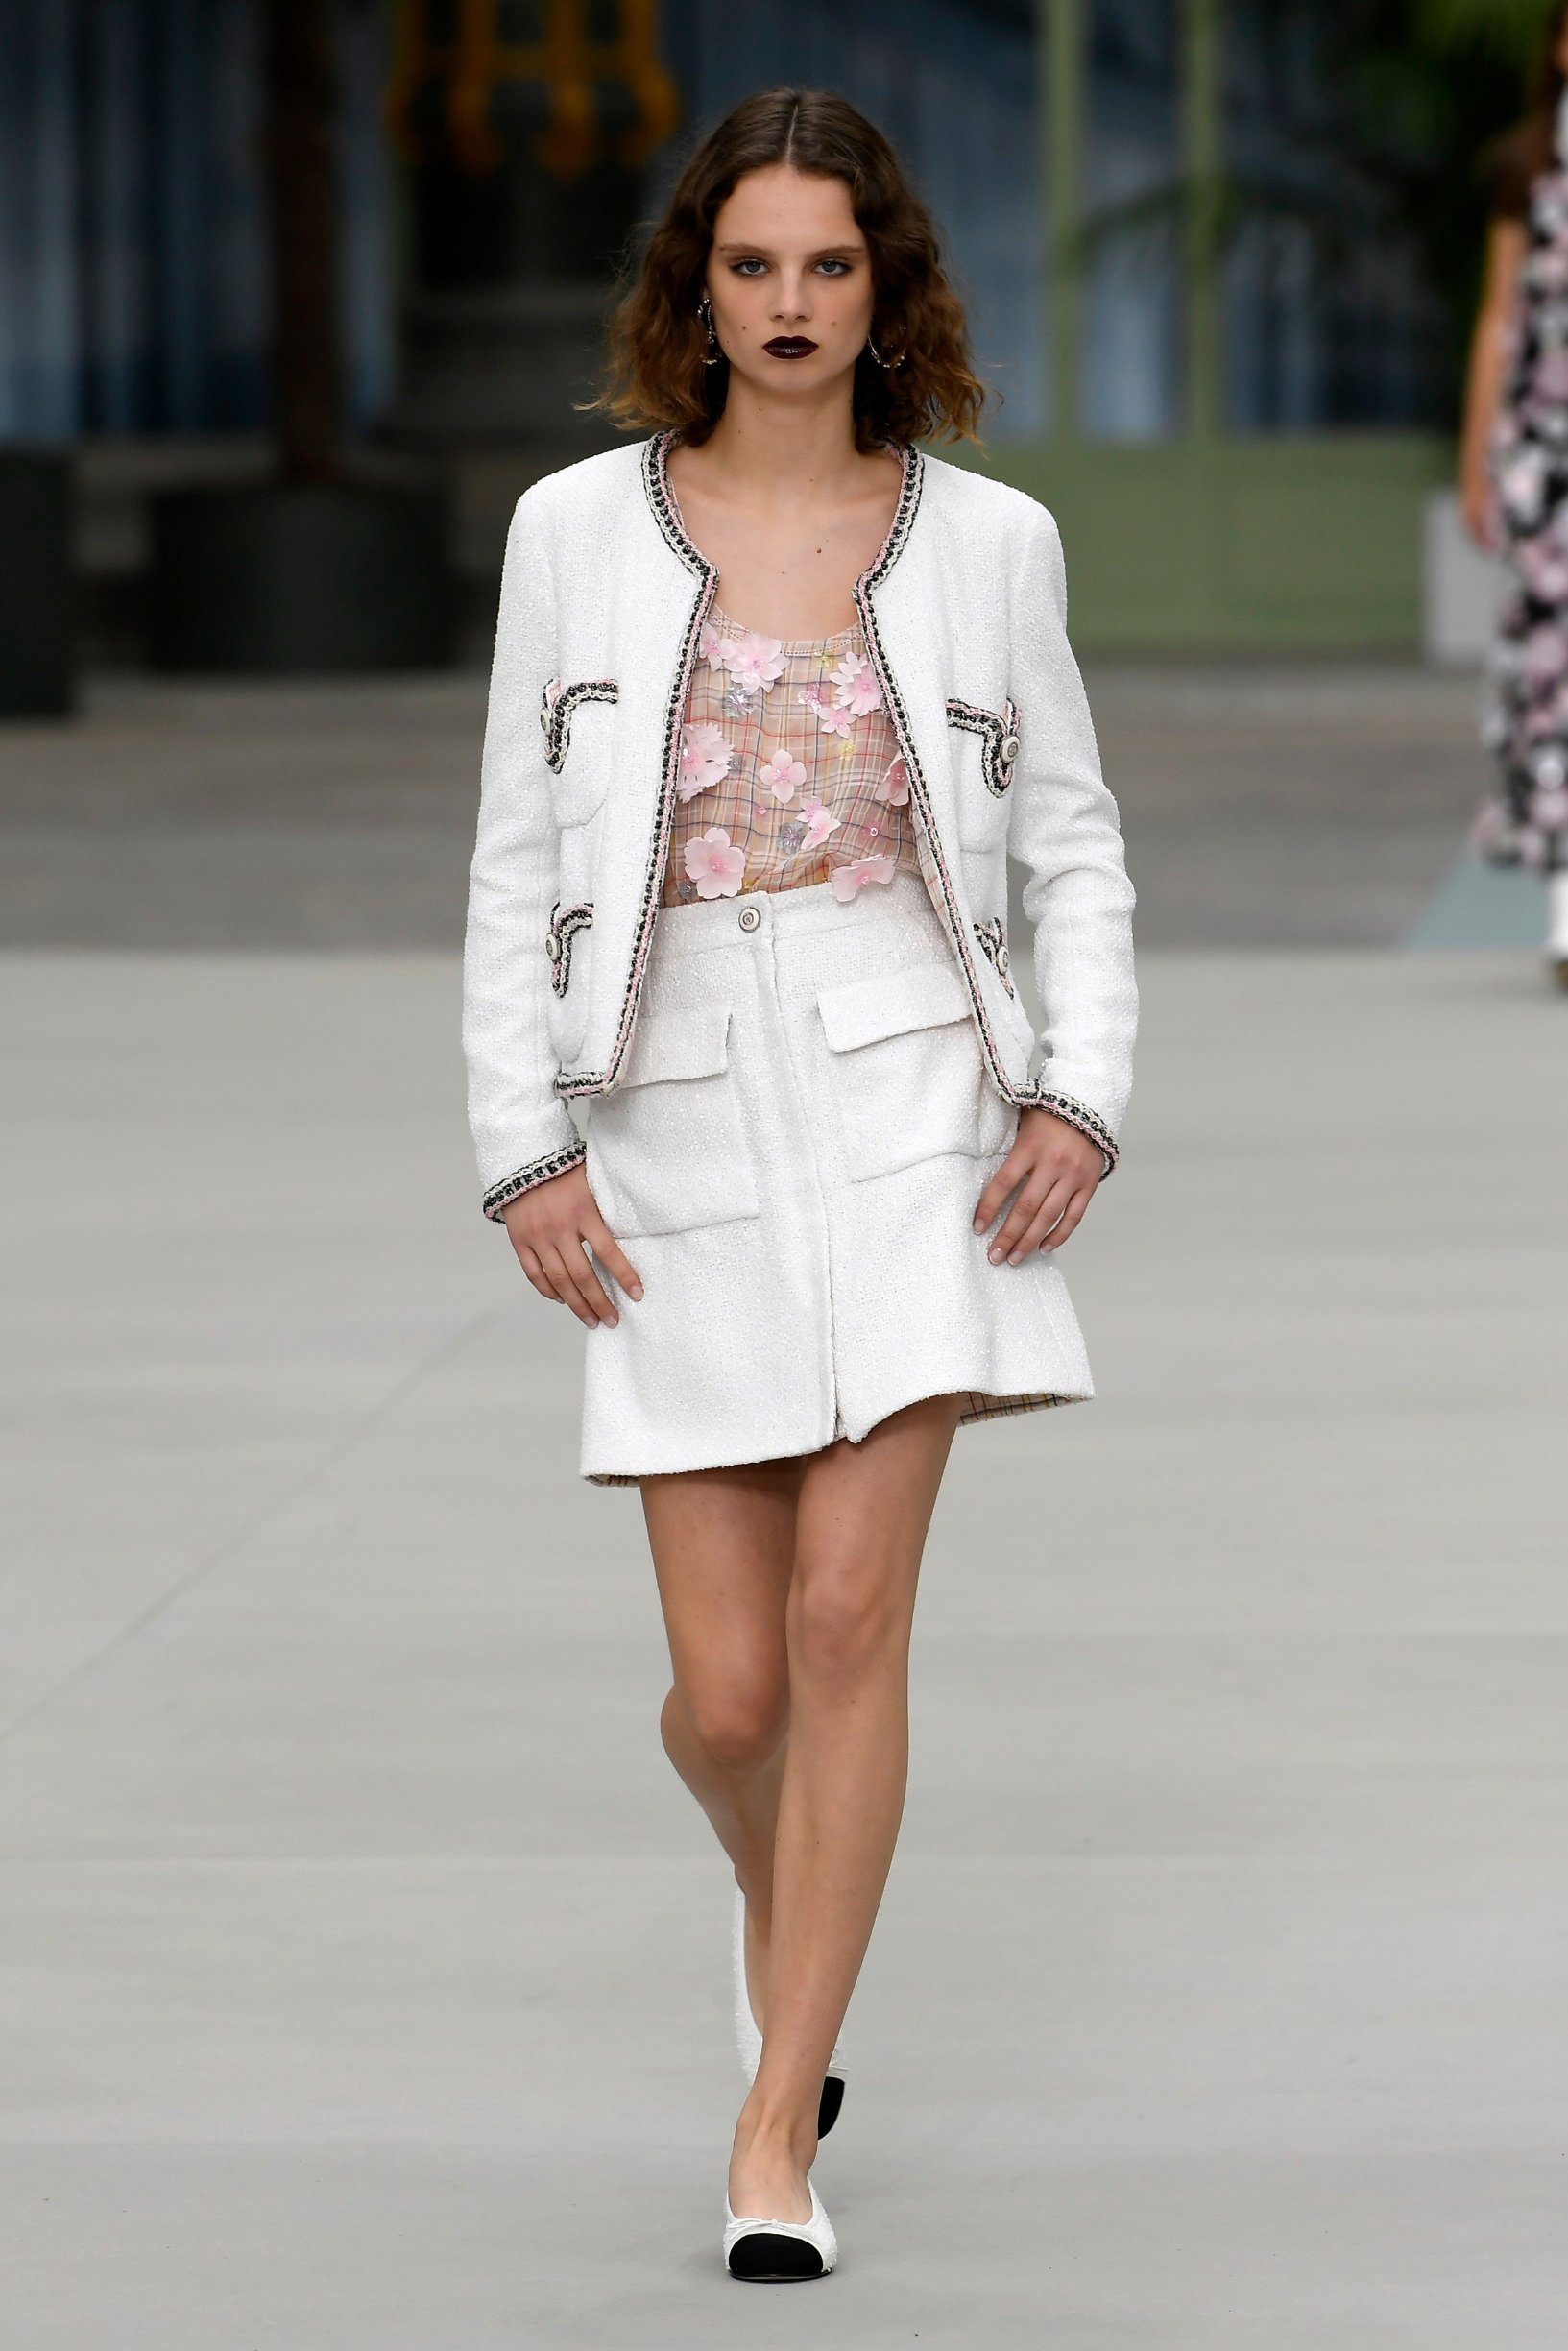 Model on the catwalk Chanel Cruise 2020 show, Runway, Paris, France - 03 May 2019, Image: 430644358, License: Rights-managed, Restrictions: , Model Release: no, Credit line: Profimedia, TEMP Rex Features